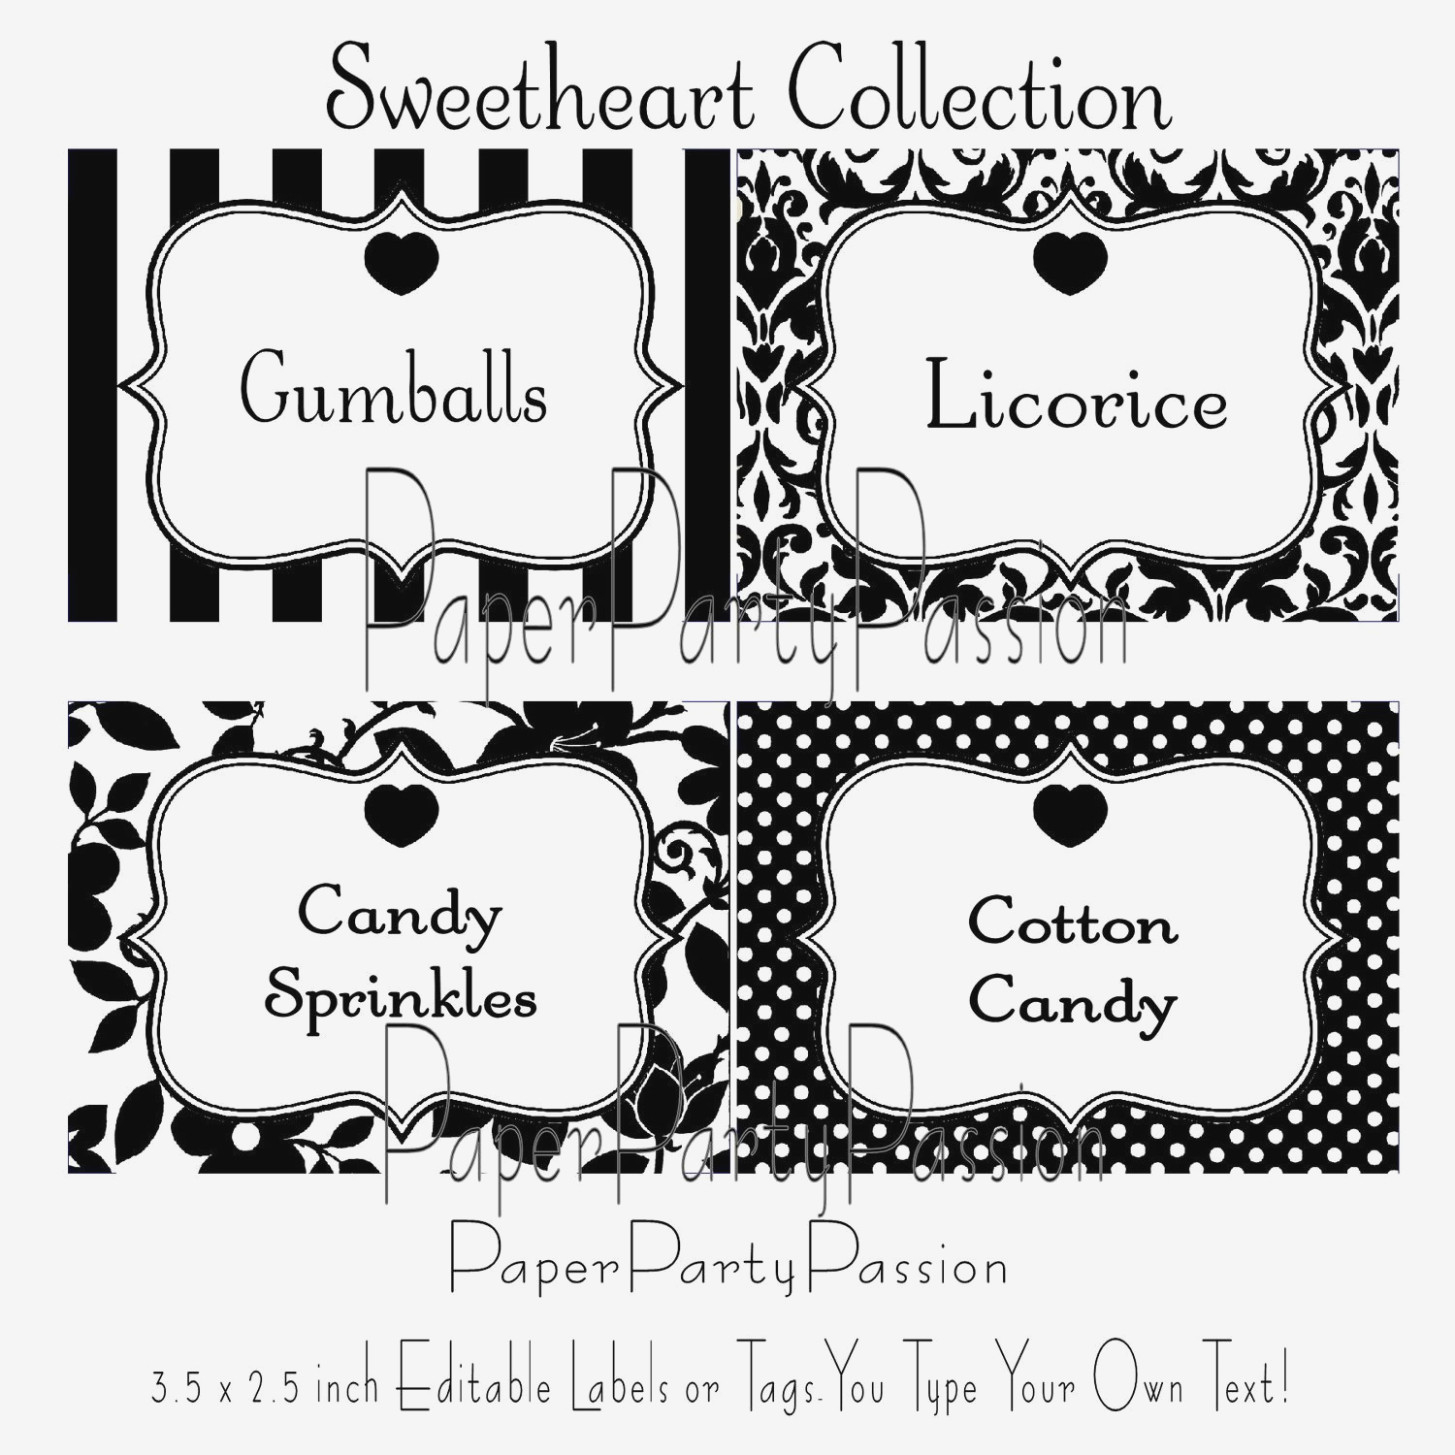 Free Printable Candy Buffet Labels Templates .. – Label Maker Ideas - Free Printable Candy Buffet Labels Templates